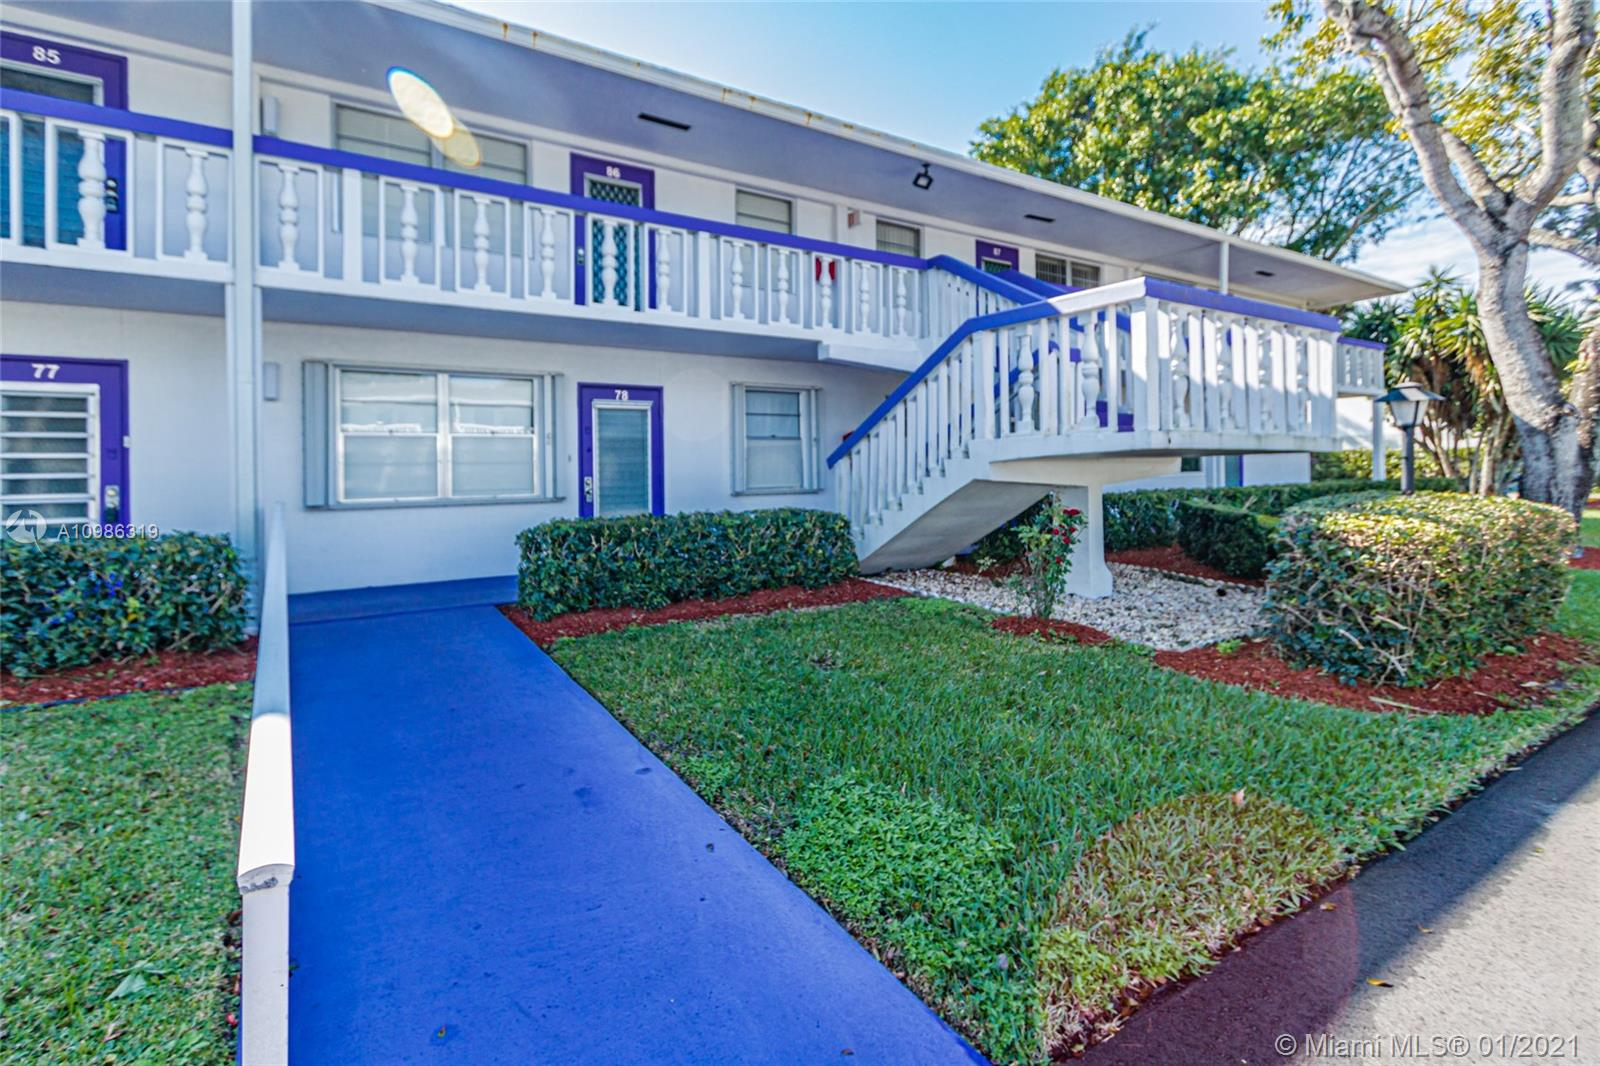 Nice comfortable and updated unit in the quite Century Village. AC and Water Heater 5 years old, balcony with hurricane protection. Furniture is negotiable. Gated community with free transportation (inside and to some outside locations), active clubhouse with free movies, classes and events. Convenient located at less than 15 min from the beach and major Highways.